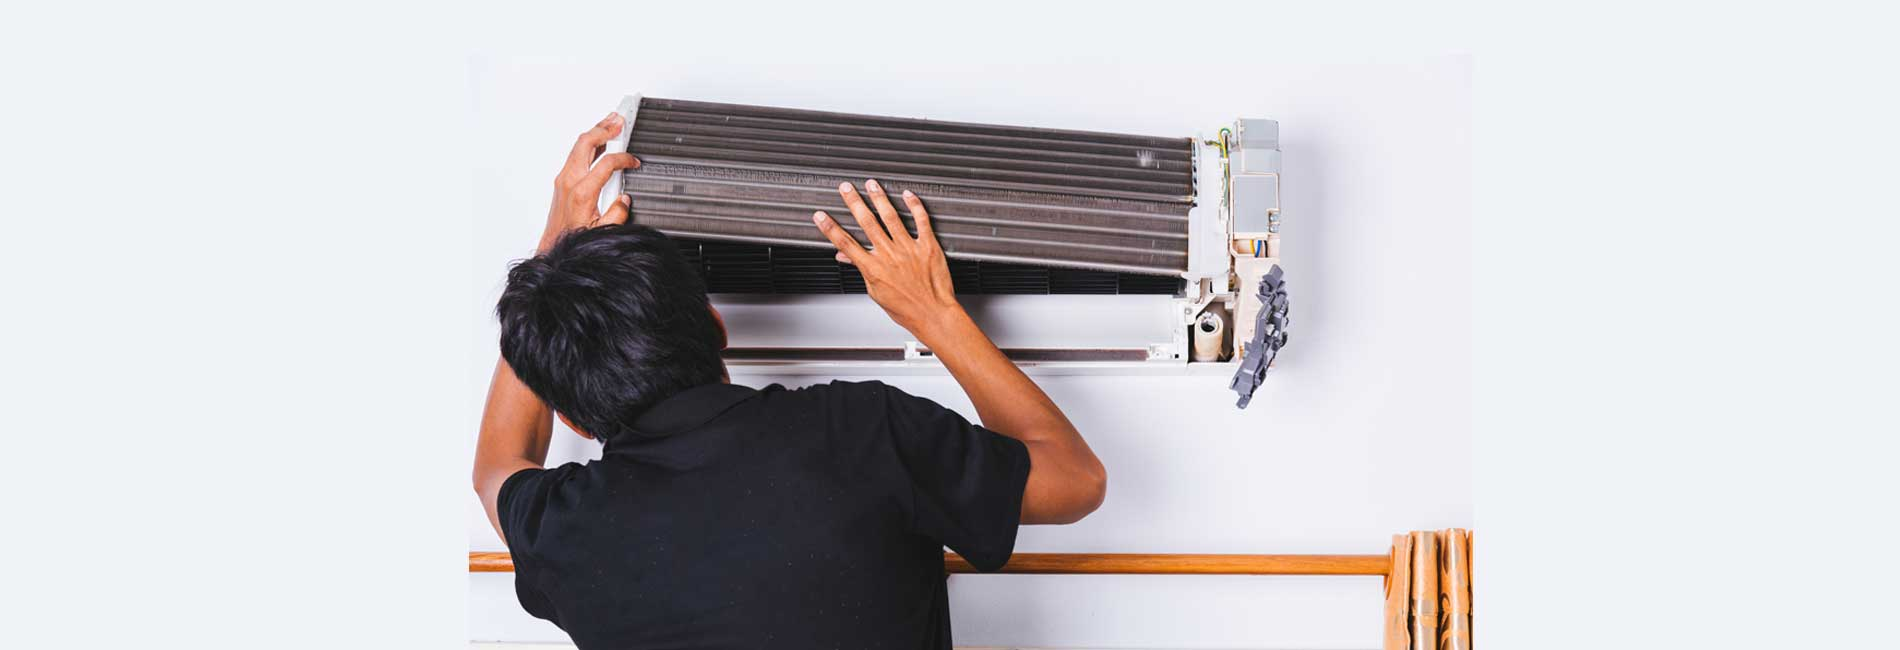 LG Split AC Uninstallation in Sholavaram